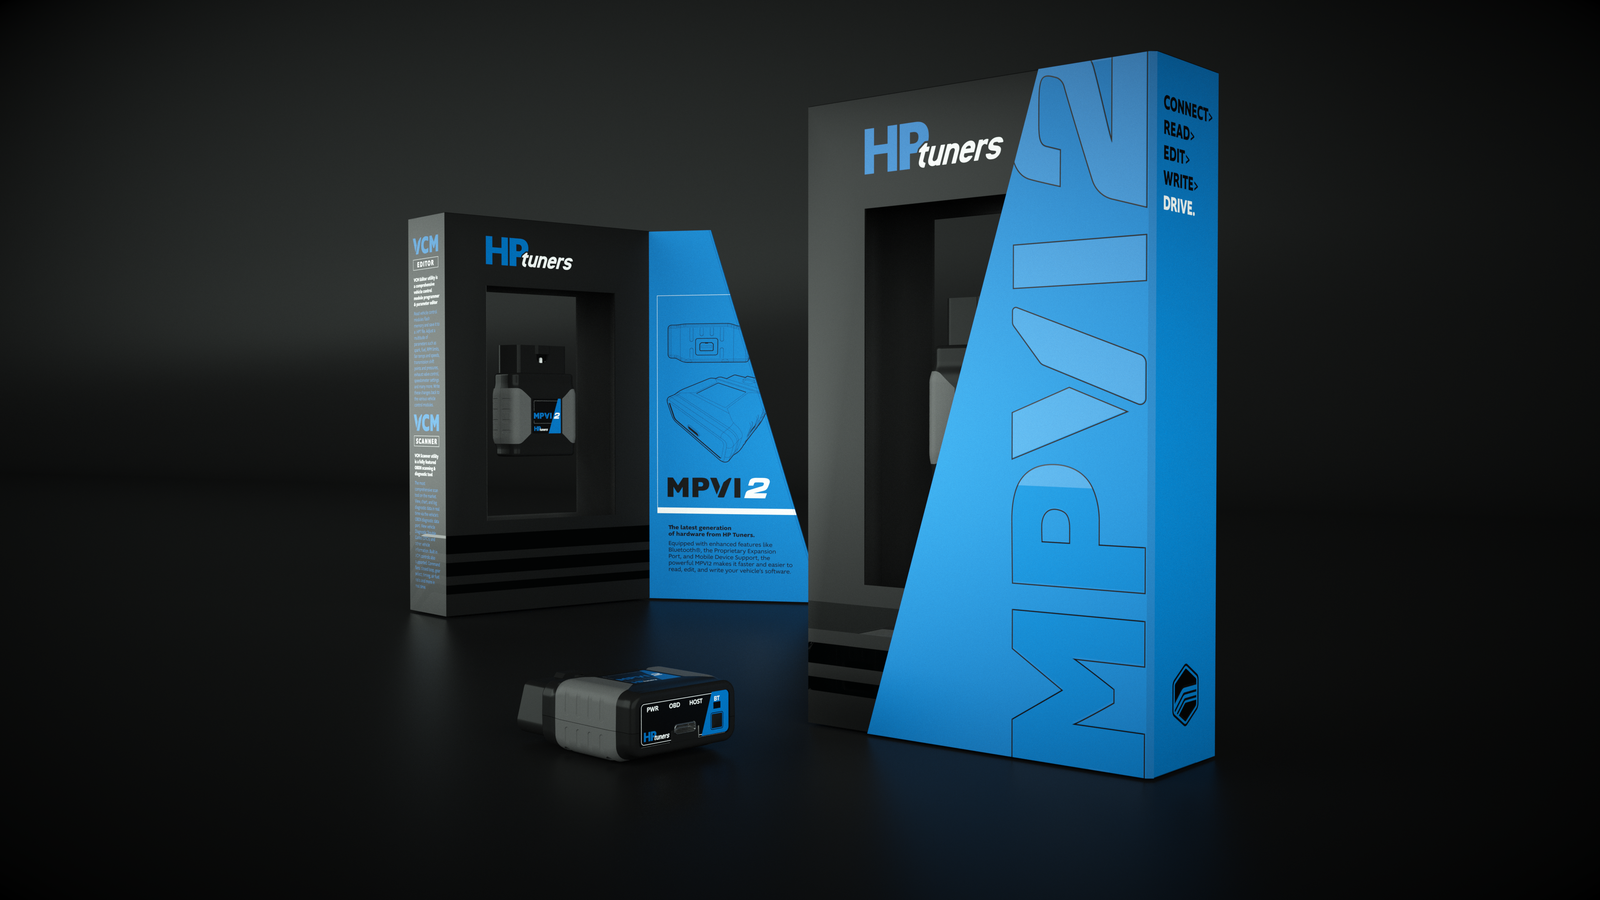 HP Tuners MPVI2, the latest generation of hardware from HP Tuners